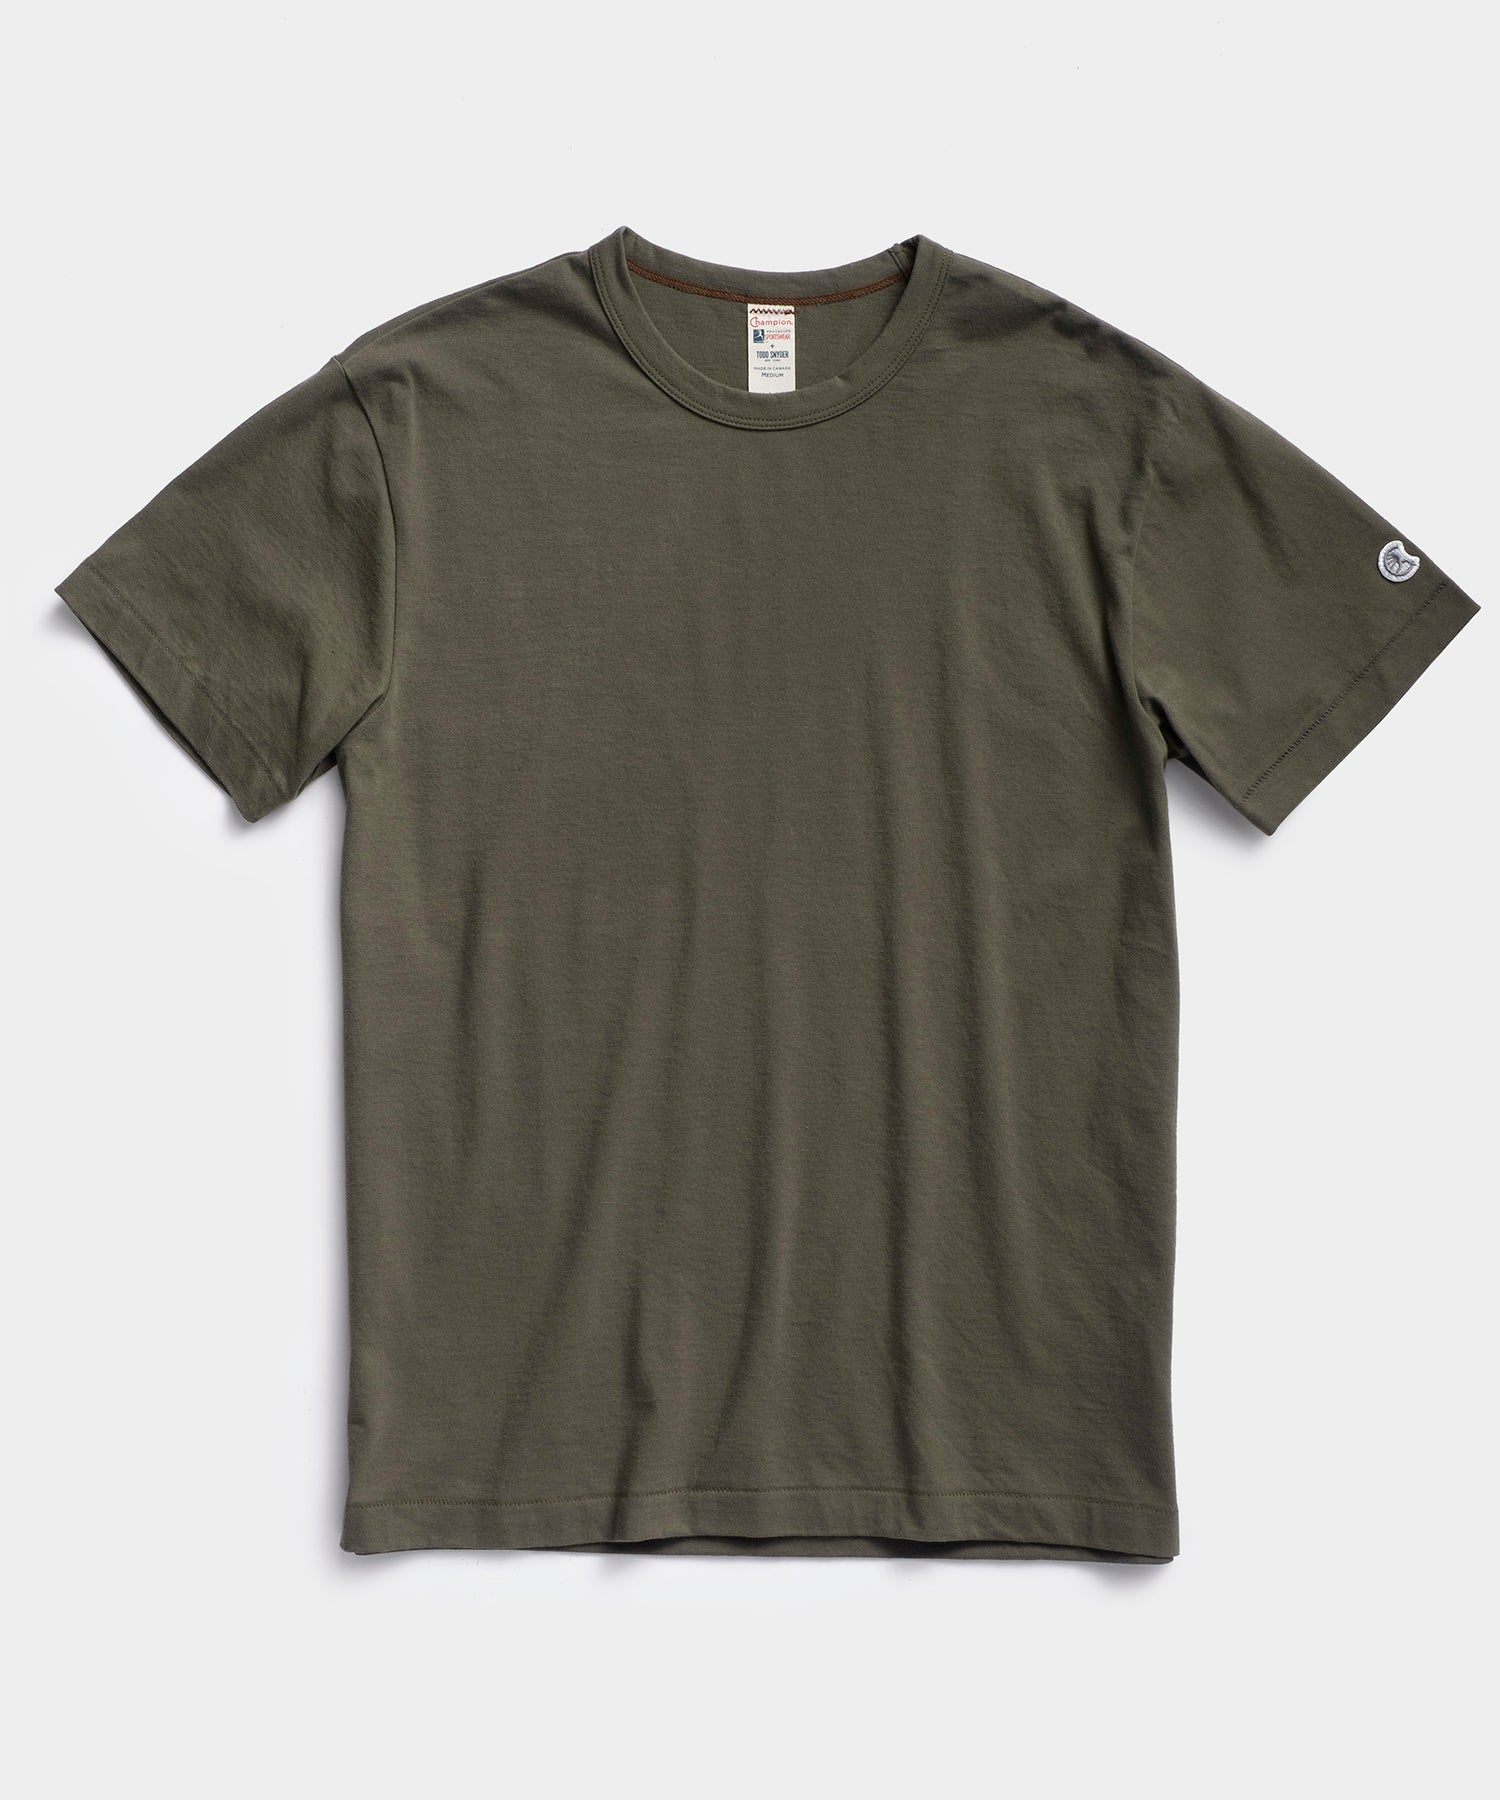 Champion Basic Tee in Olive Drab